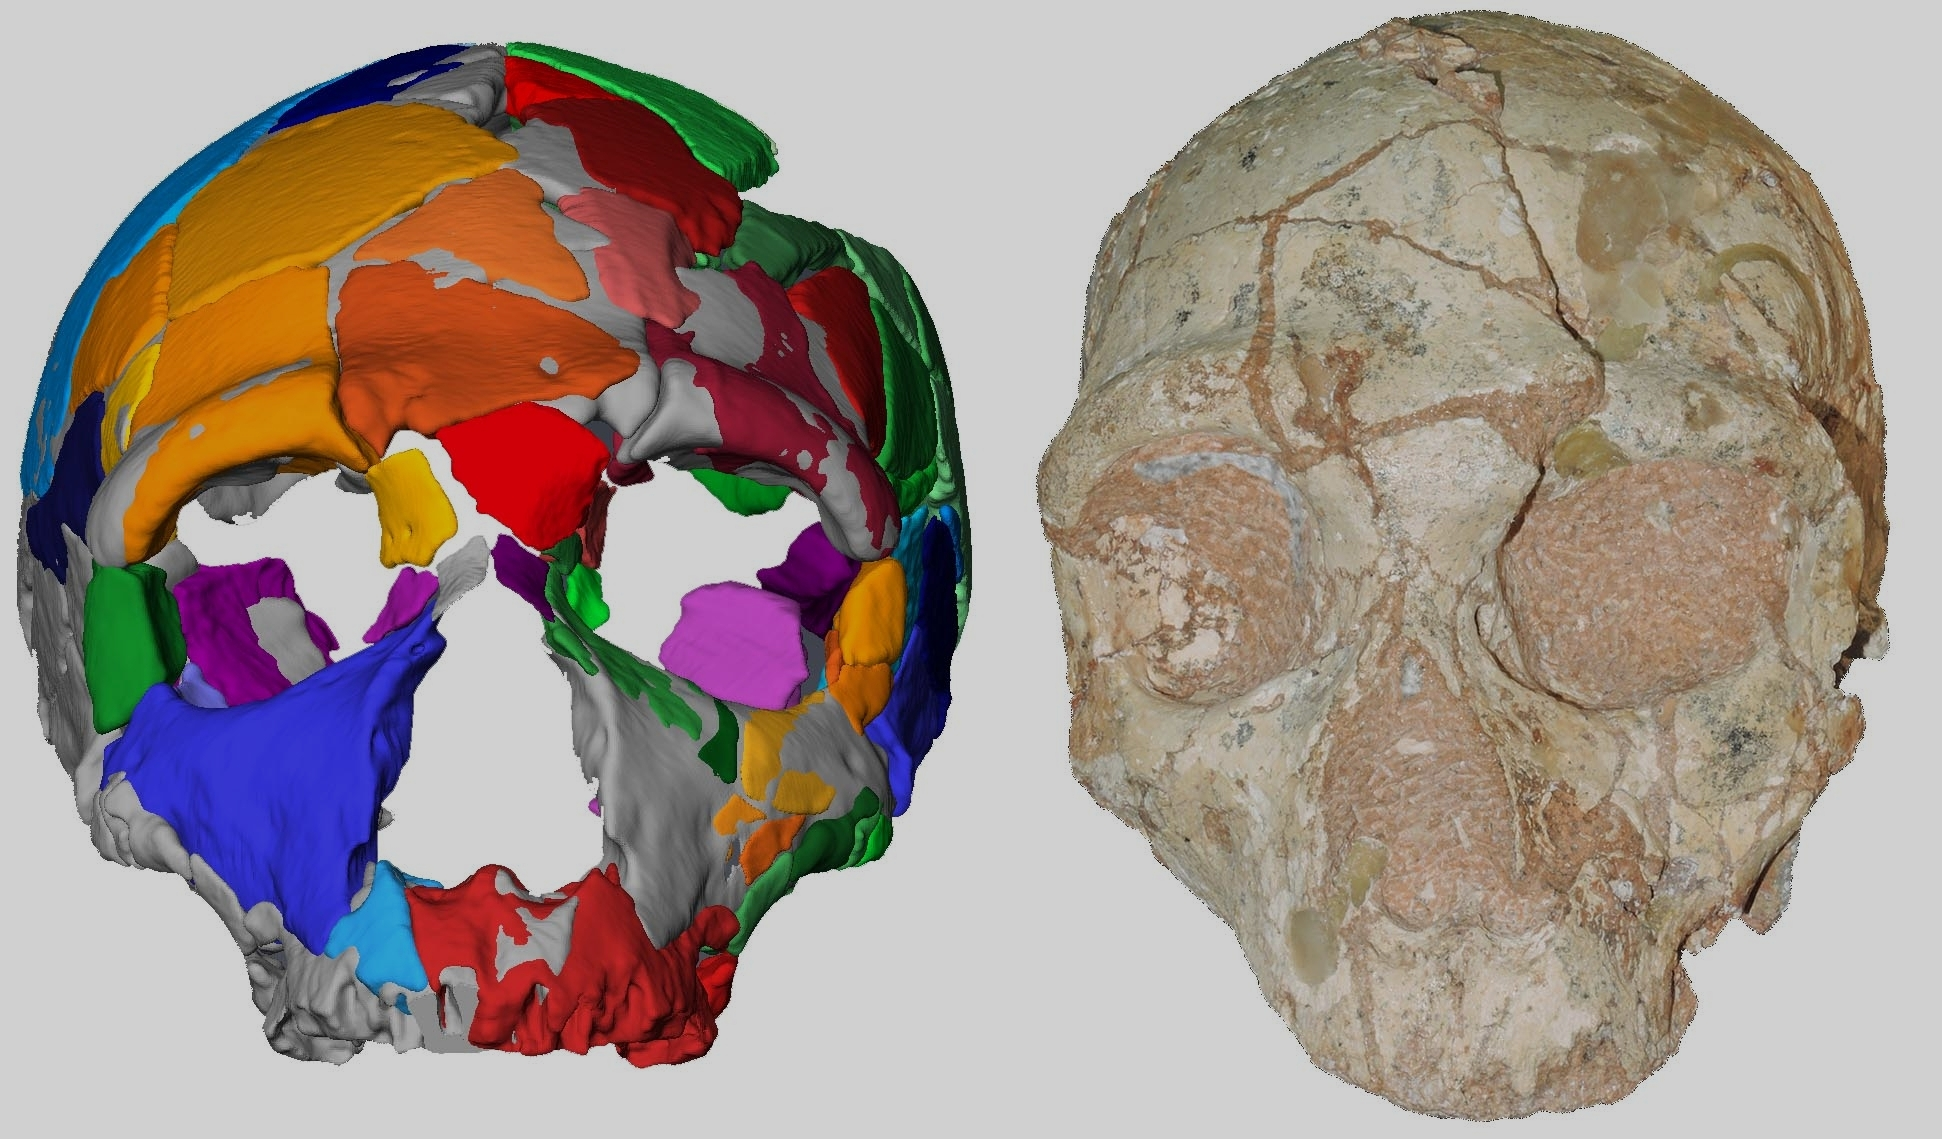 The Apidima 2 cranium and its reconstruction